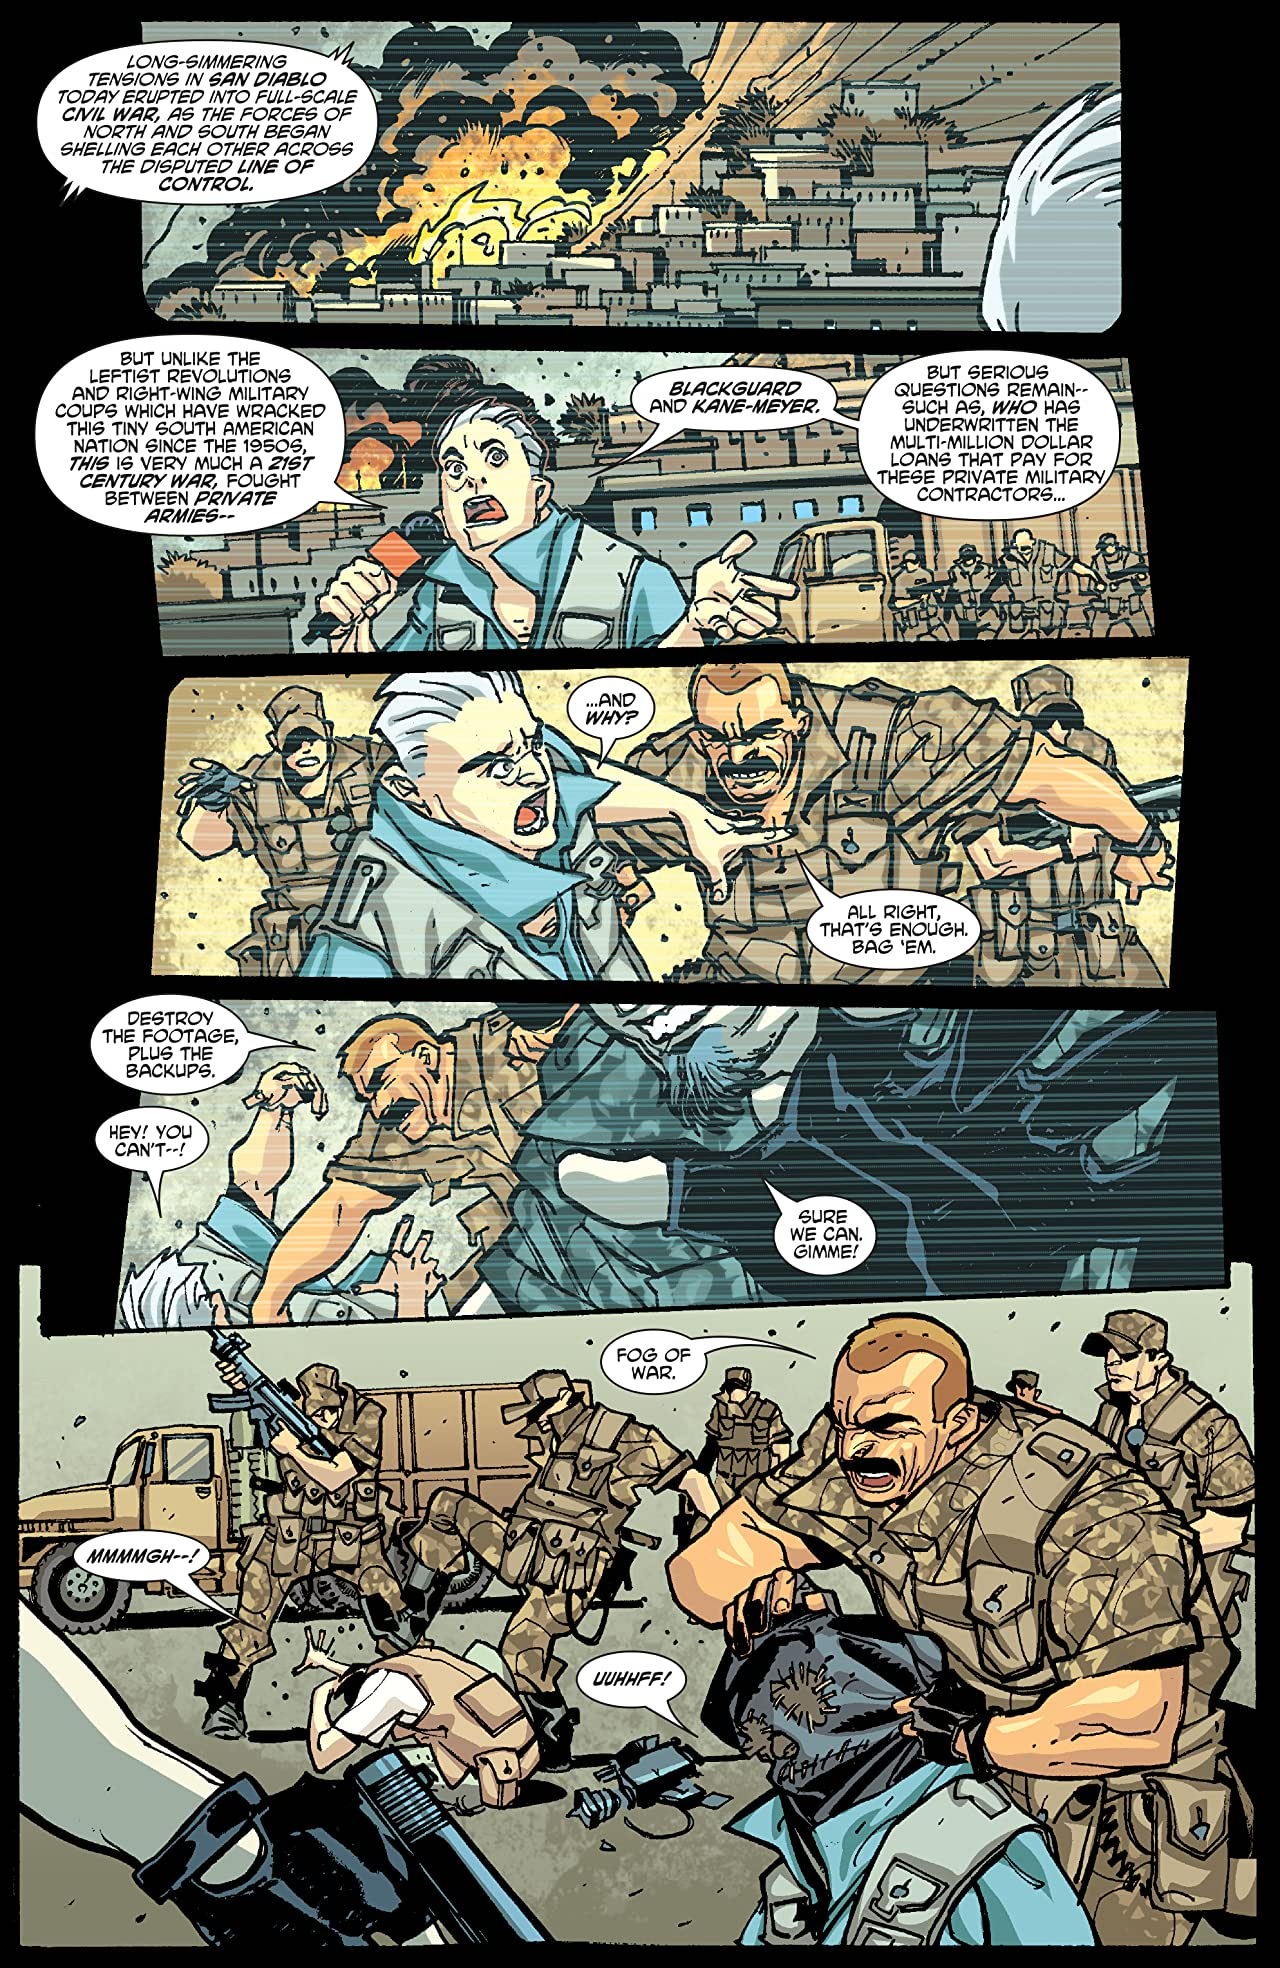 Six Guns (2011-2012) #5 (of 5)